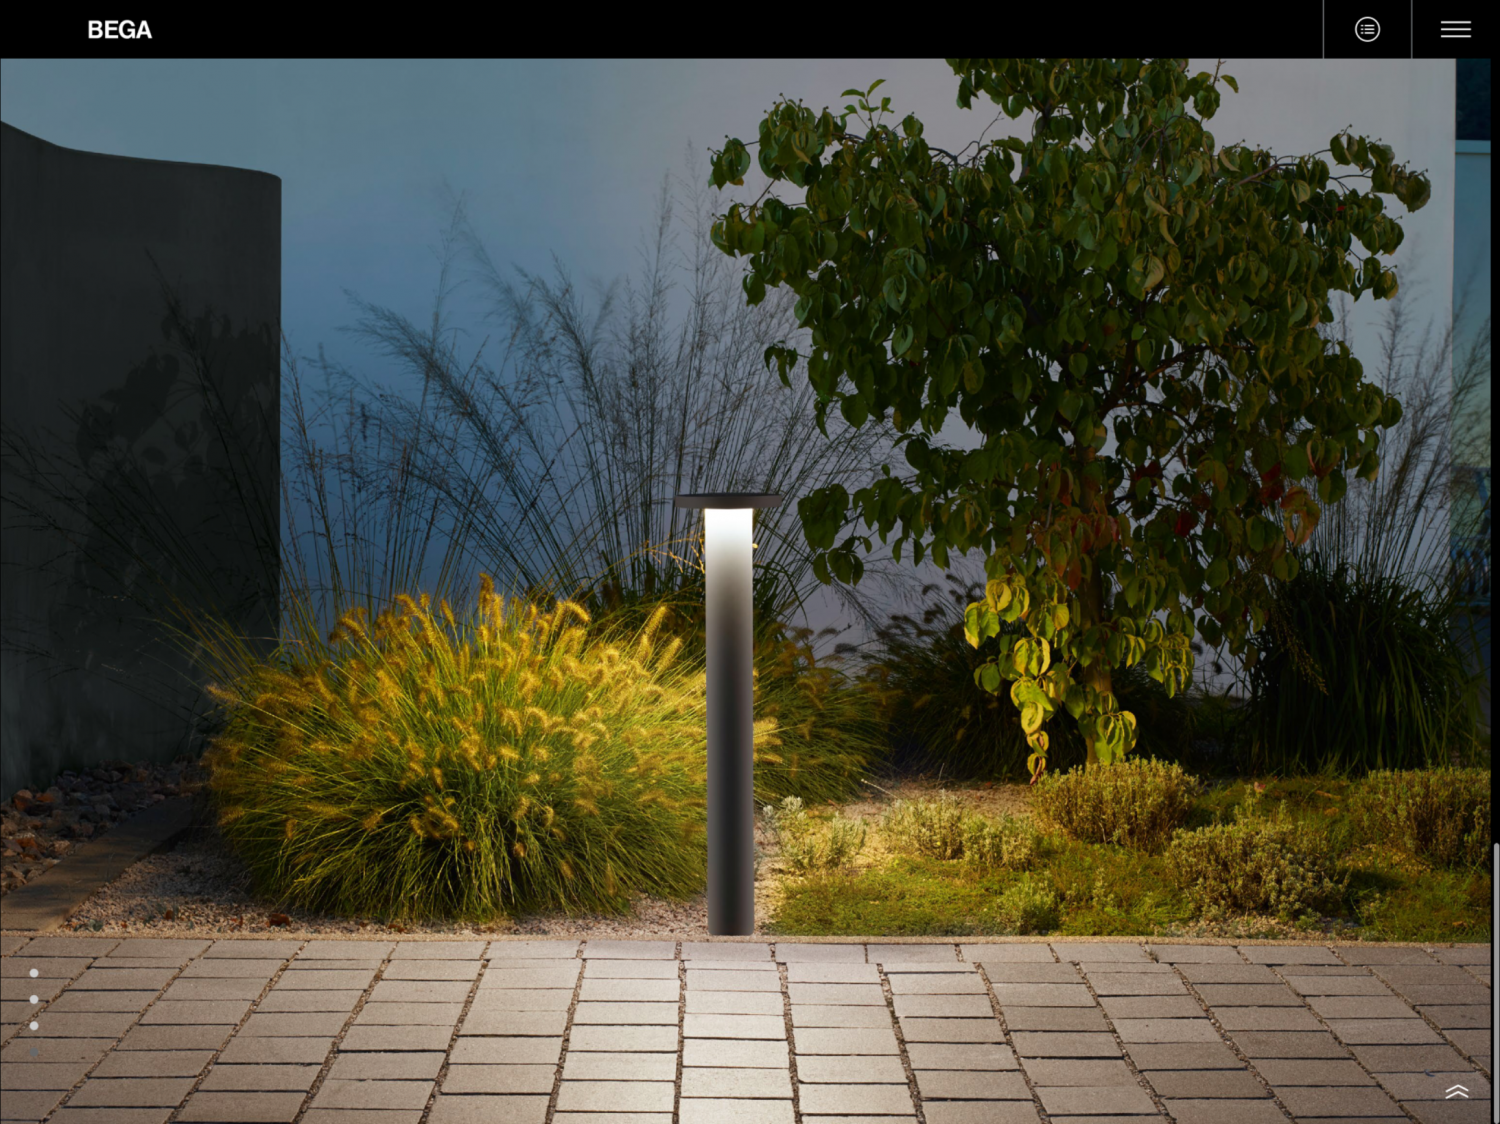 bega light Google 搜尋 Open space, Safety glass, Exterior